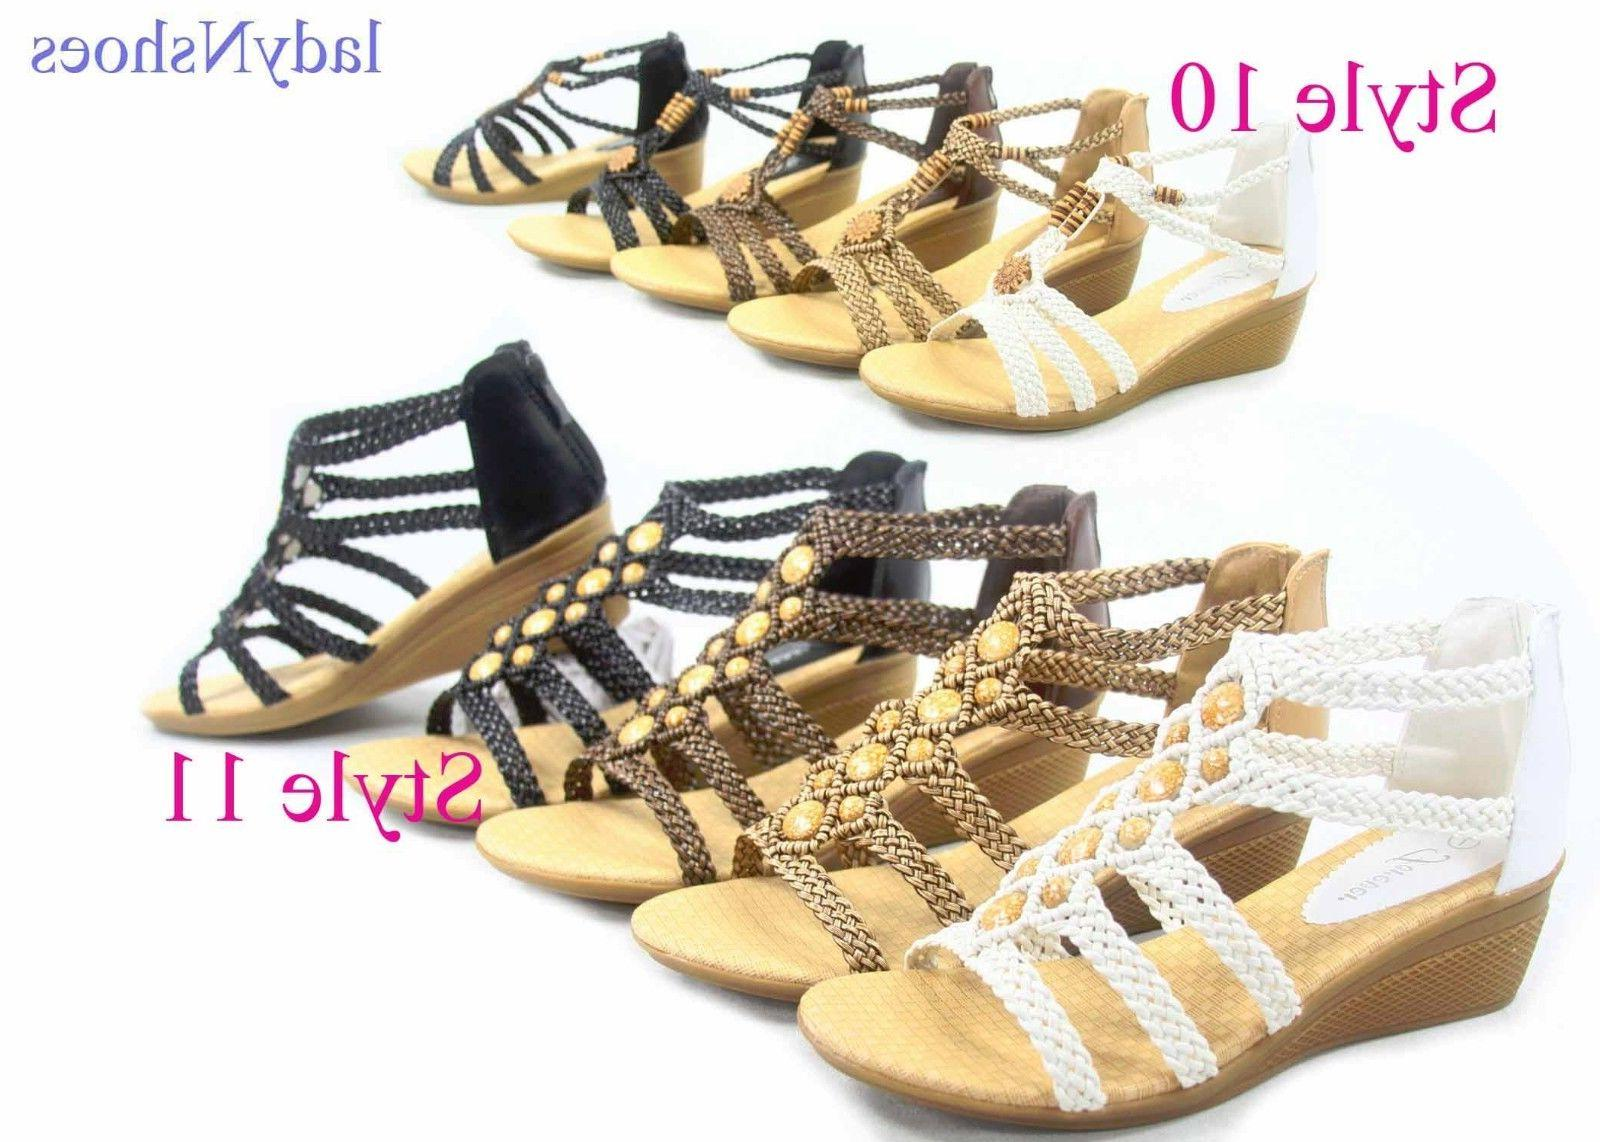 NEW Women's Ankle Strap Toe Braided Sandal Size 5 -